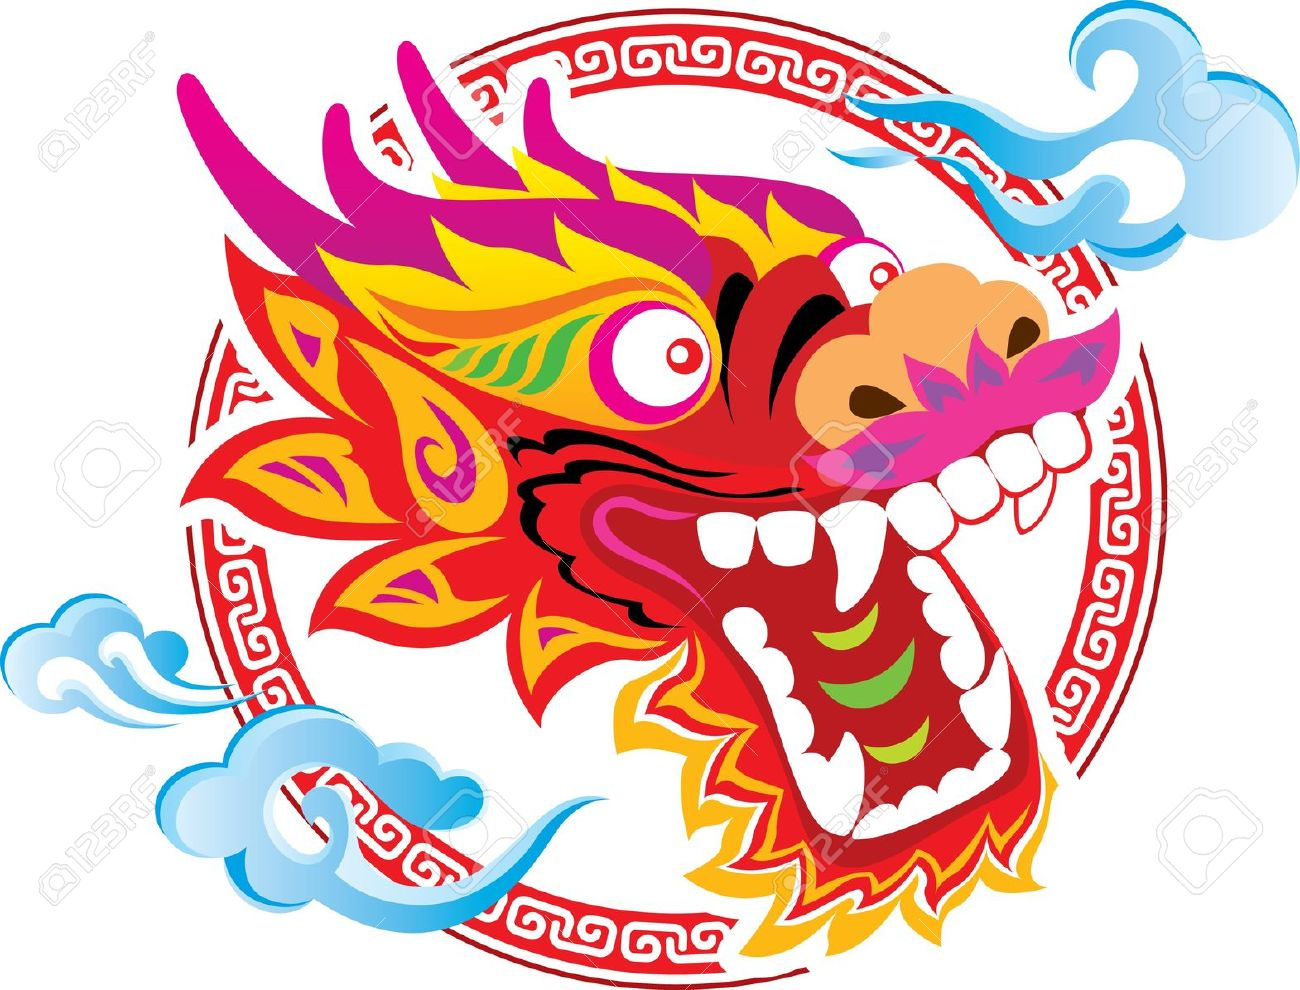 dragon cartoon clipart at getdrawings com free for personal use rh getdrawings com chinese dragon face clipart chinese dragon clipart black and white